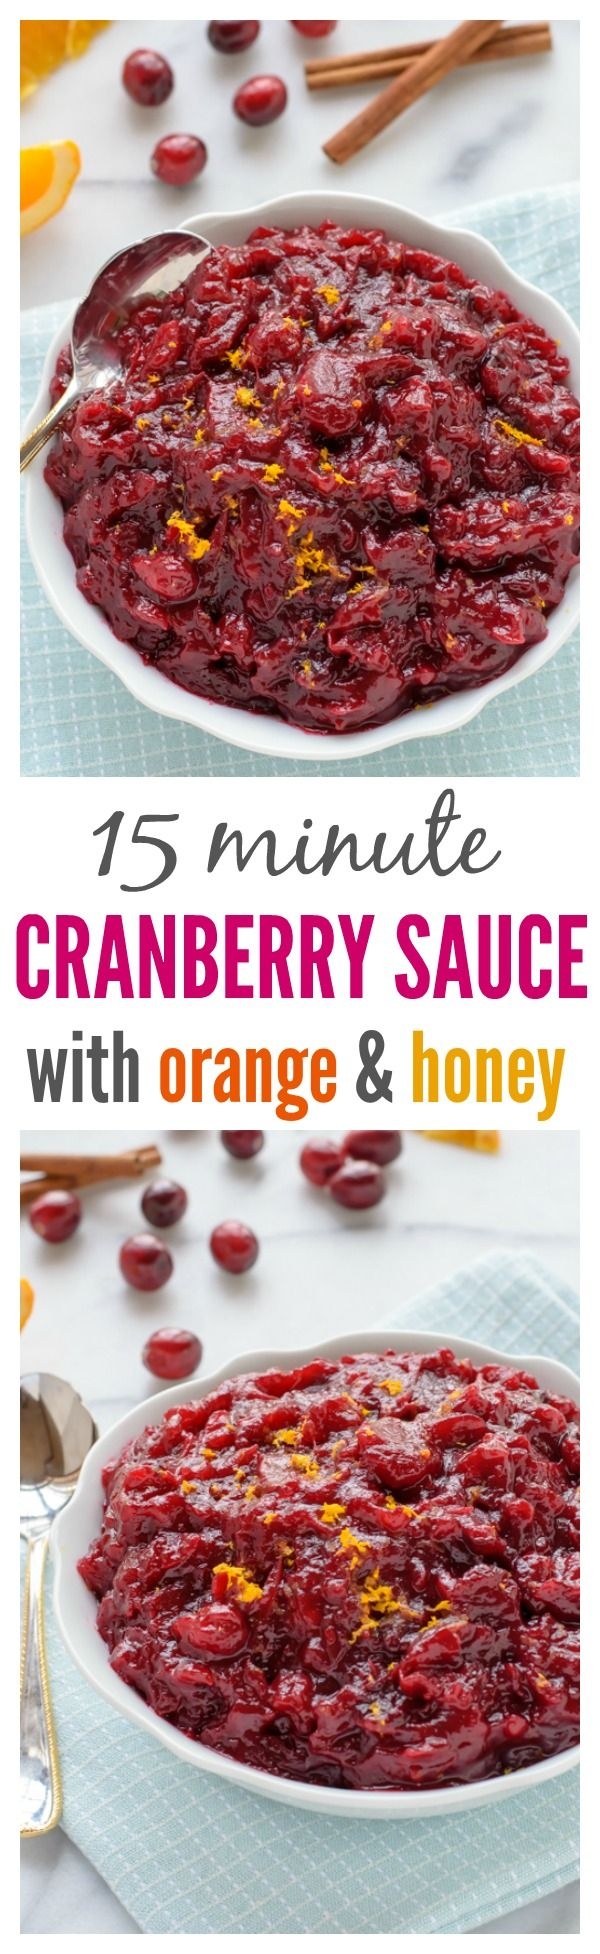 Cranberry Sauce from scratch! Ready in only 15 minutes. Once you try this recipe, you'll never use the can again!